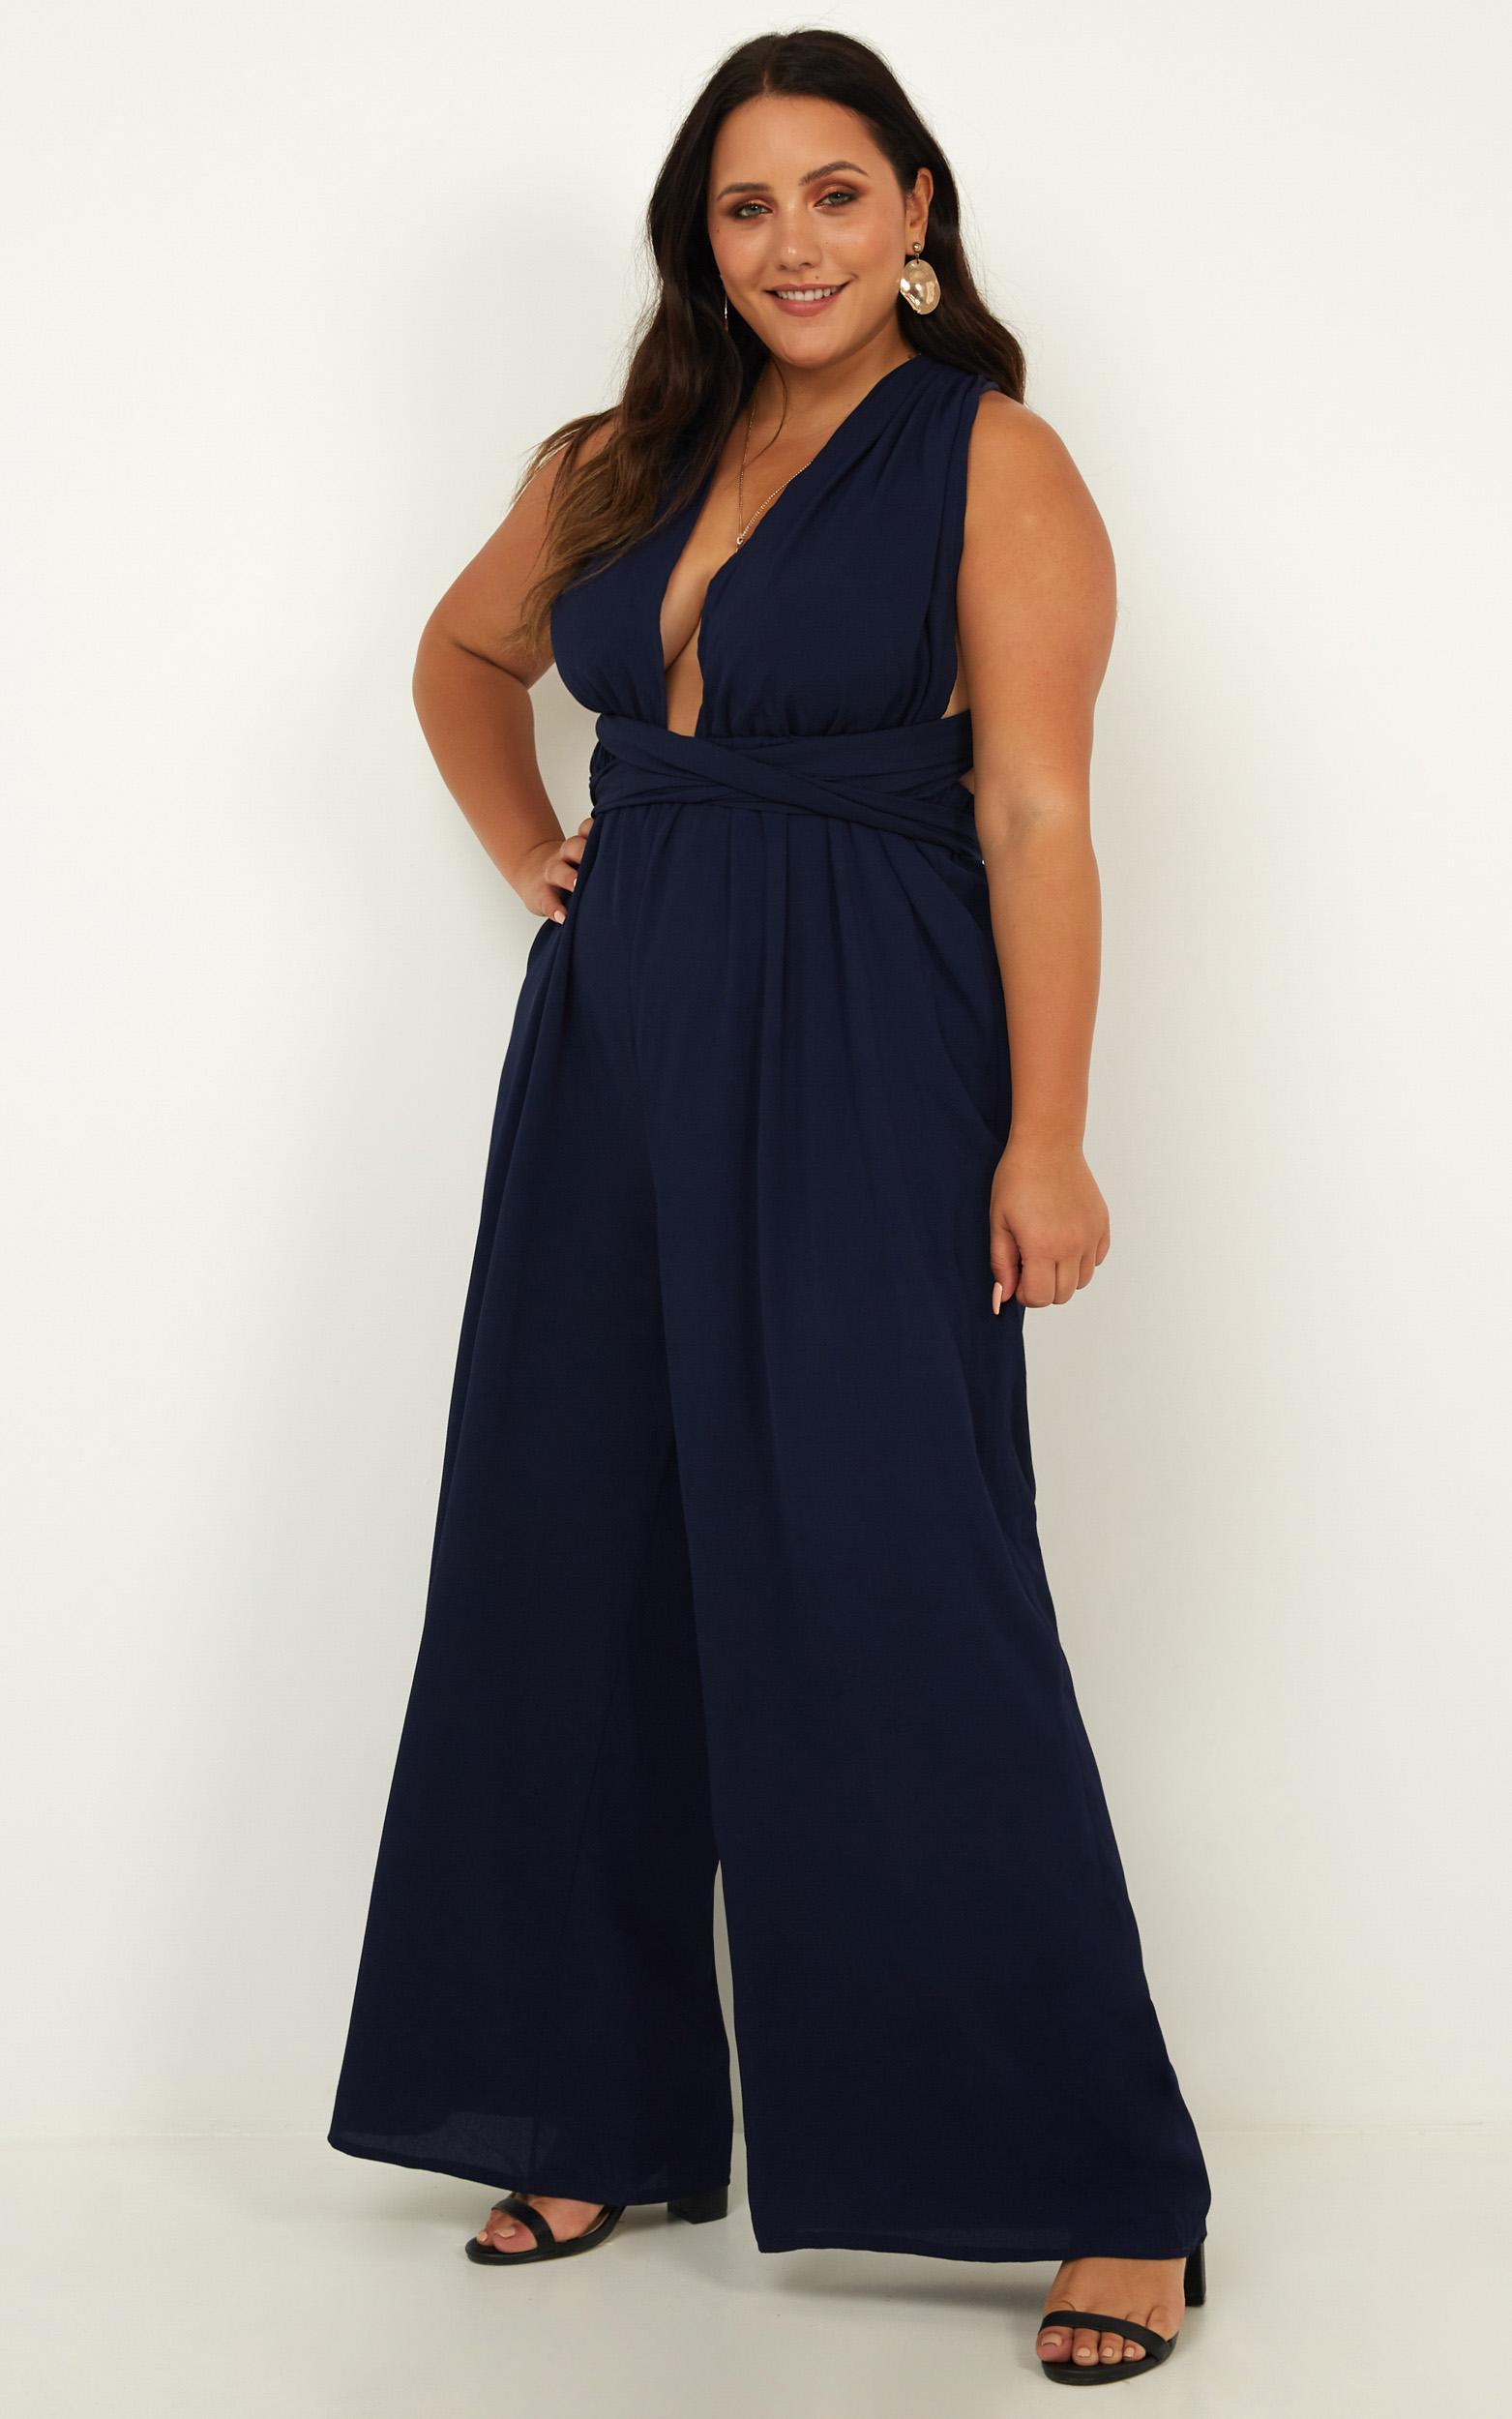 Girls Life Jumpsuit in navy - 20 (XXXXL), Navy, hi-res image number null